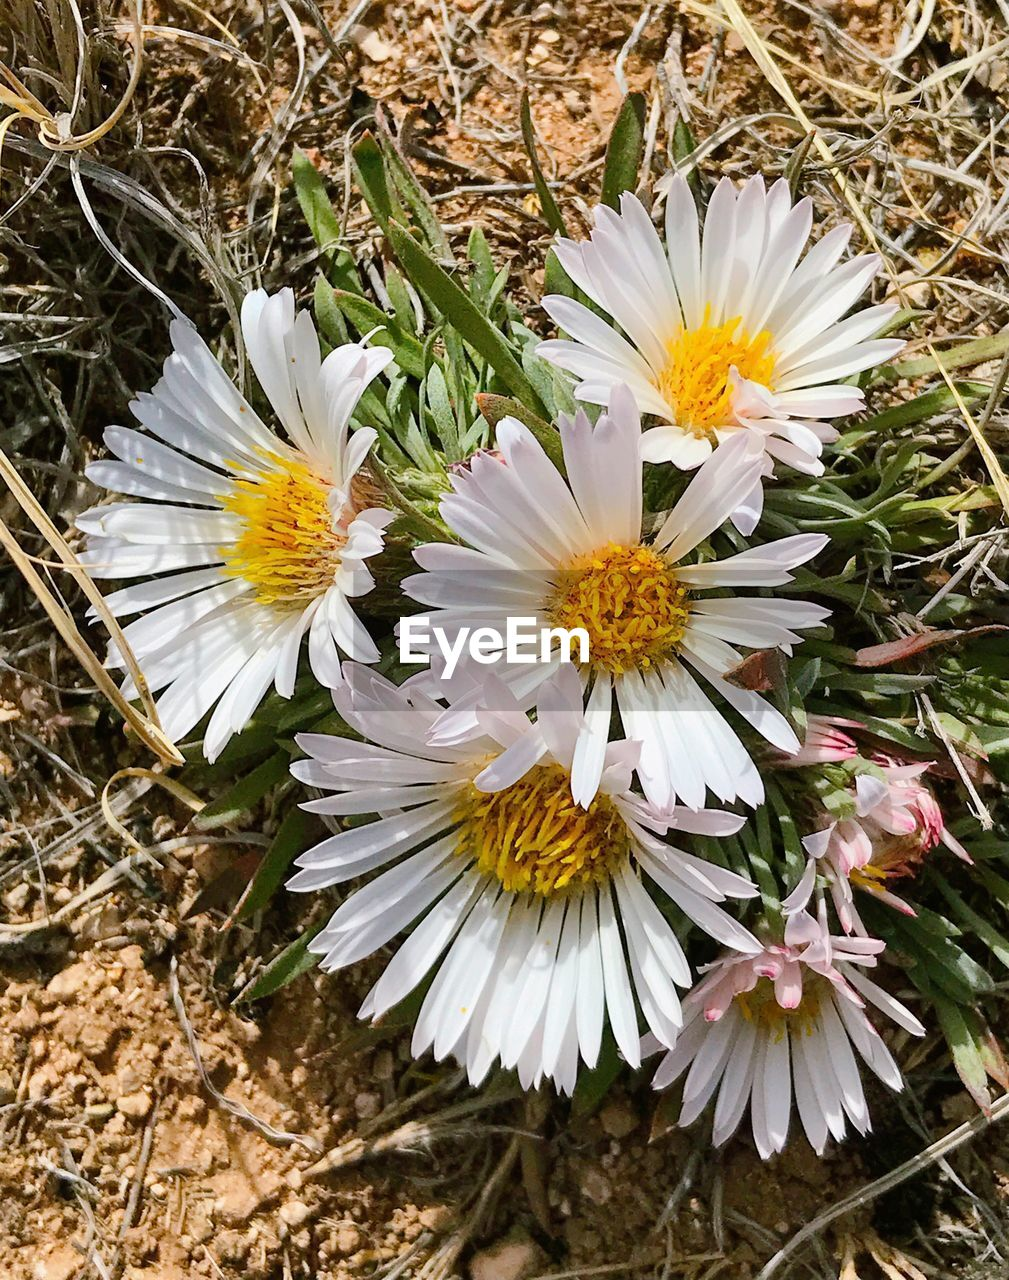 flower, flowering plant, plant, fragility, vulnerability, petal, freshness, beauty in nature, growth, white color, close-up, flower head, inflorescence, nature, day, pollen, high angle view, no people, land, daisy, outdoors, spring